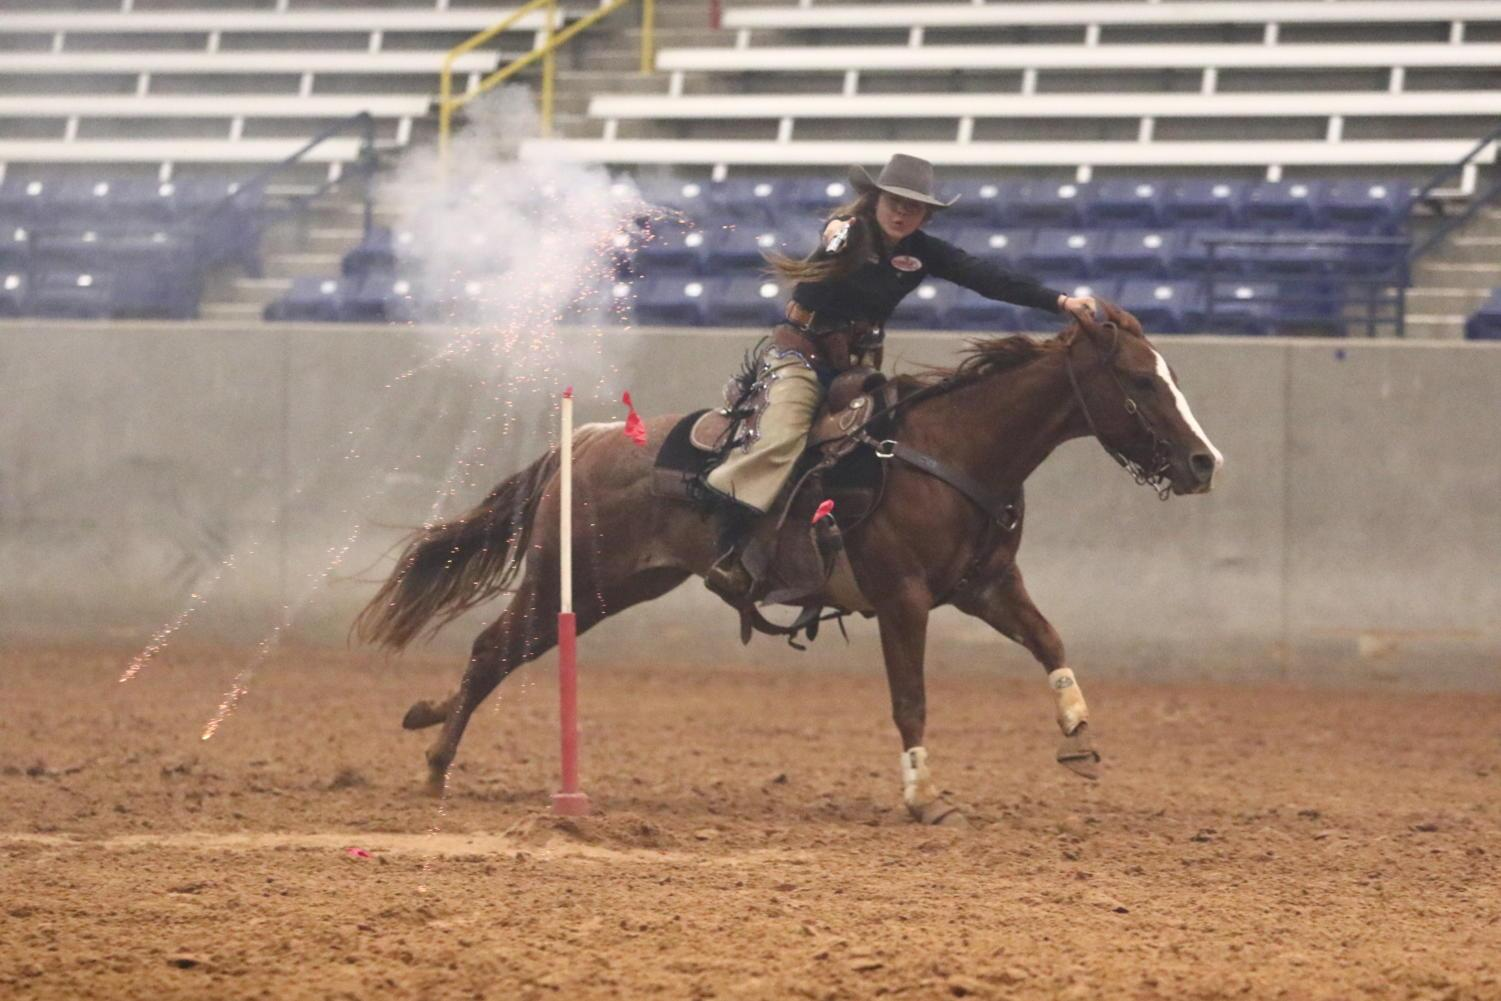 Former senior Lindsey Farrell chose online schooling to allow more time to practice her riding and shooting skills.